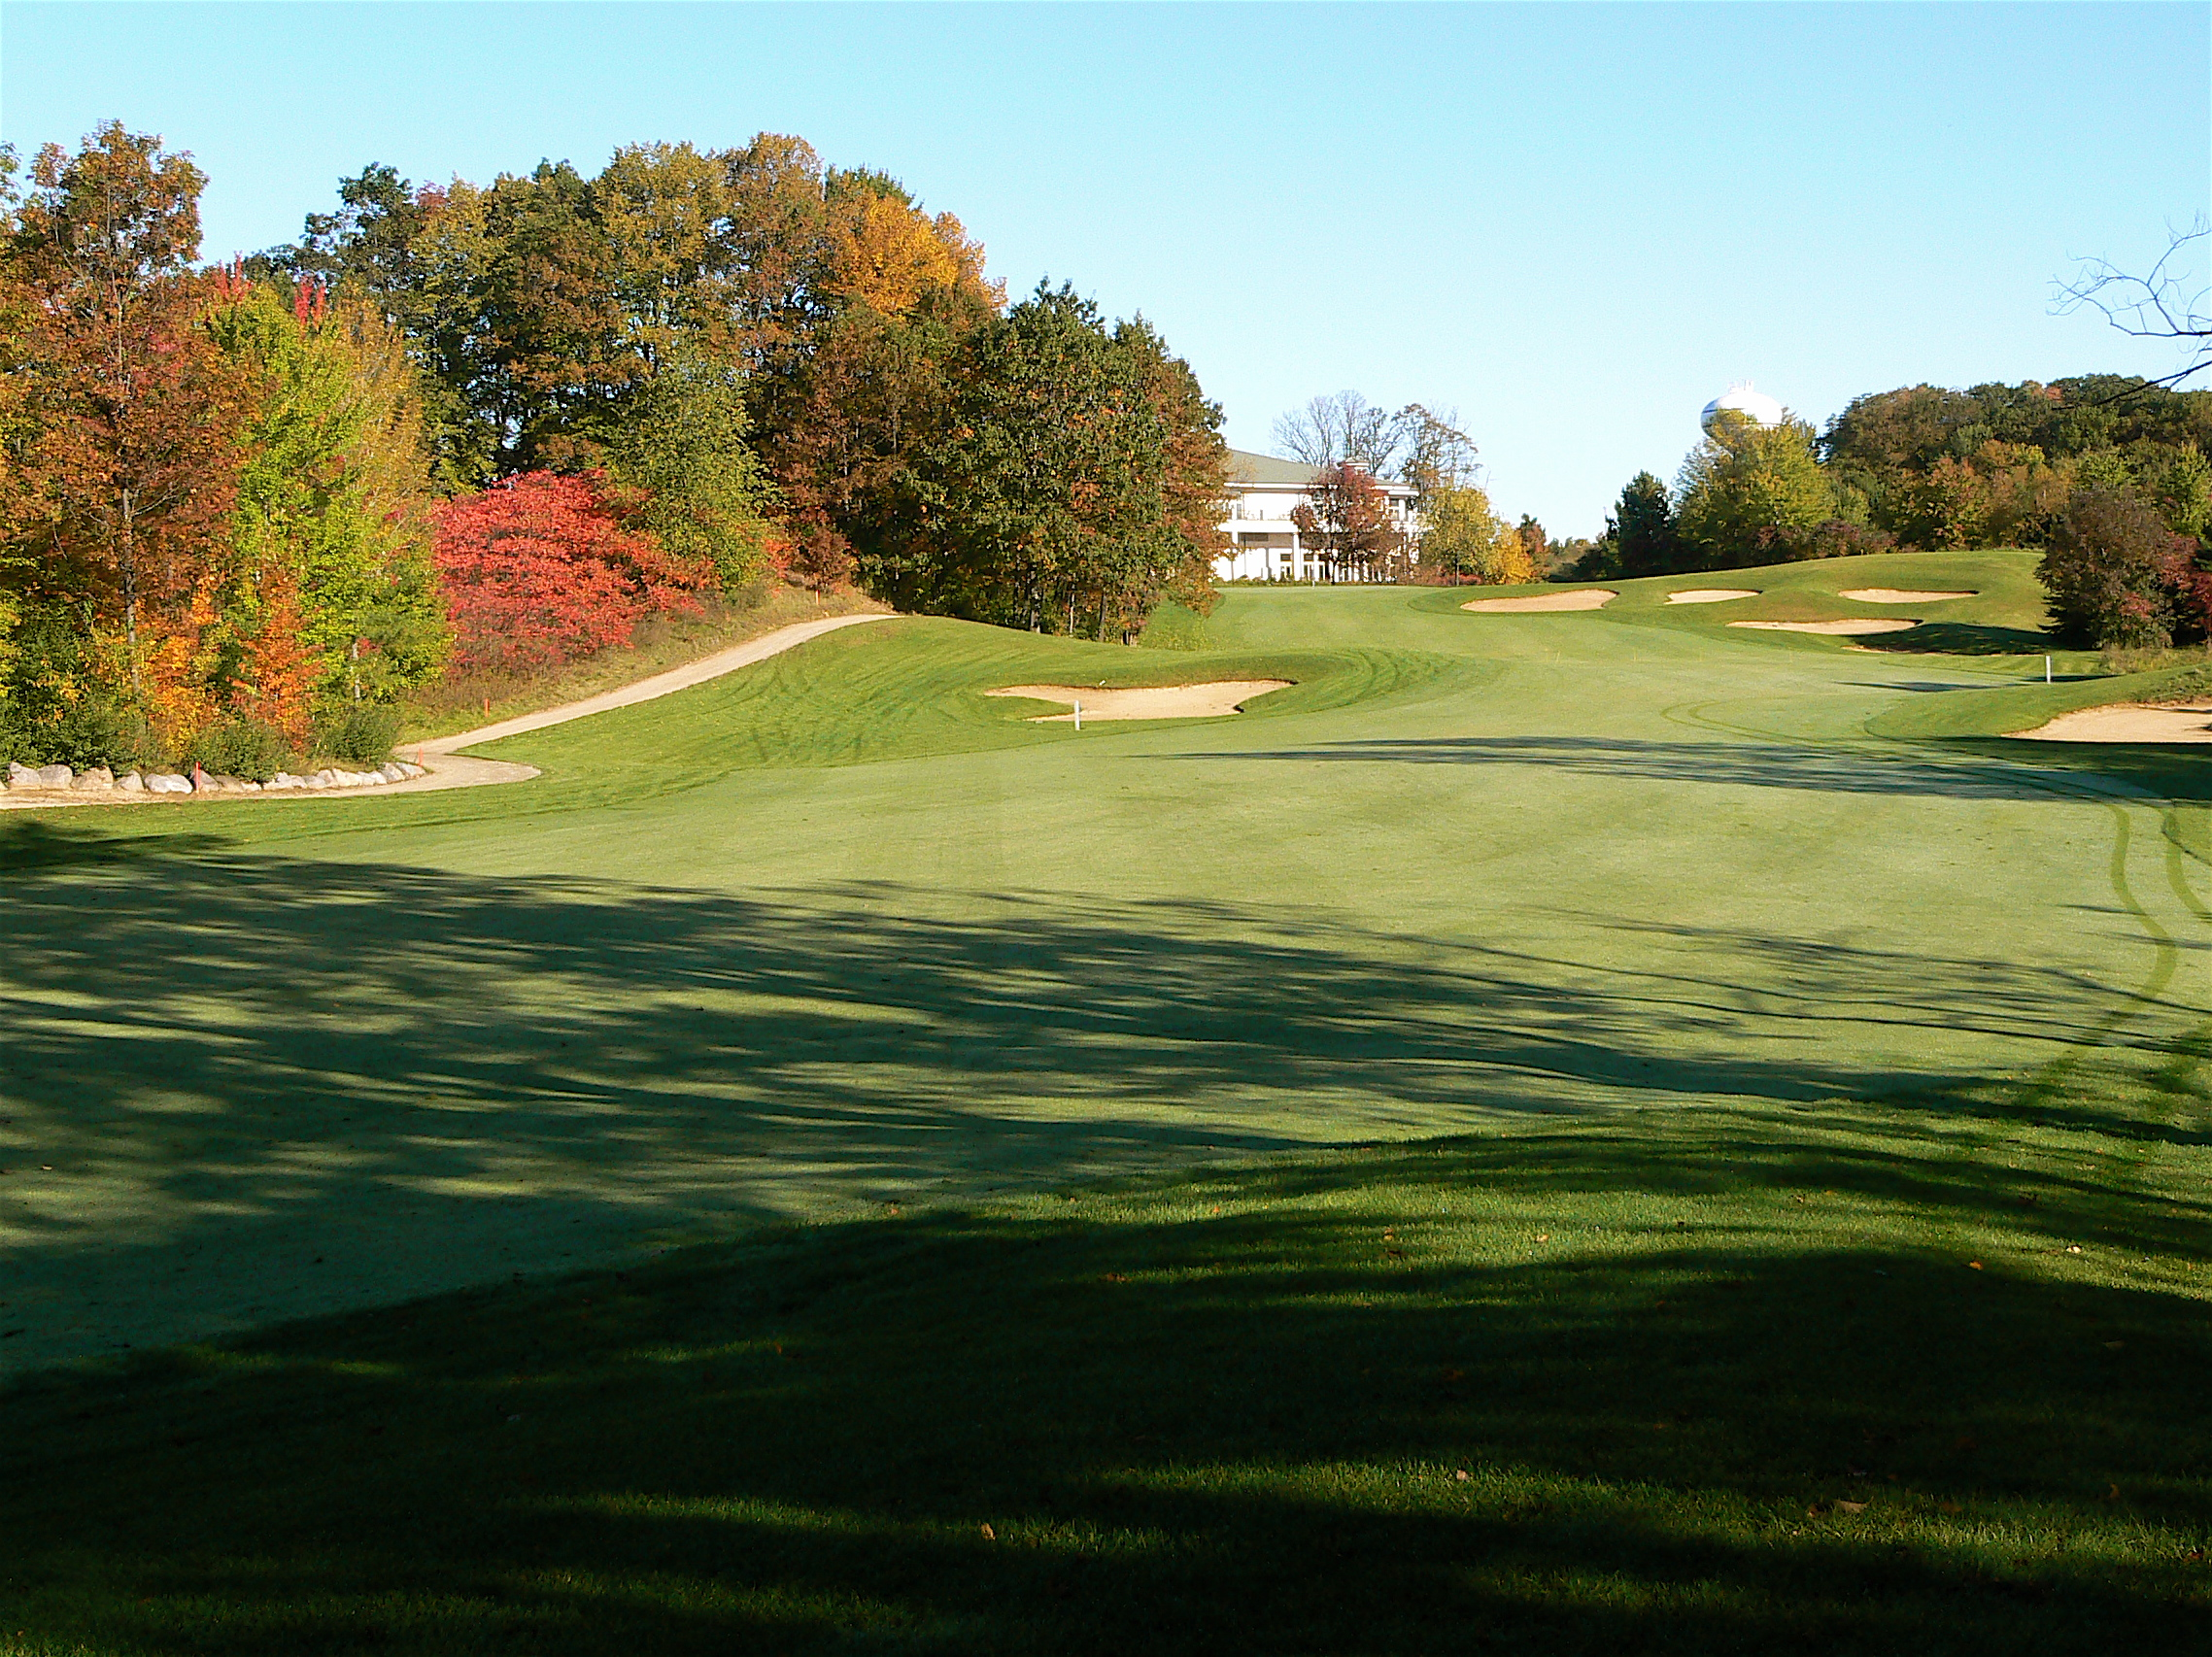 Fall Colors in Greater Green Bay - Greater Green Bay CVB Blog